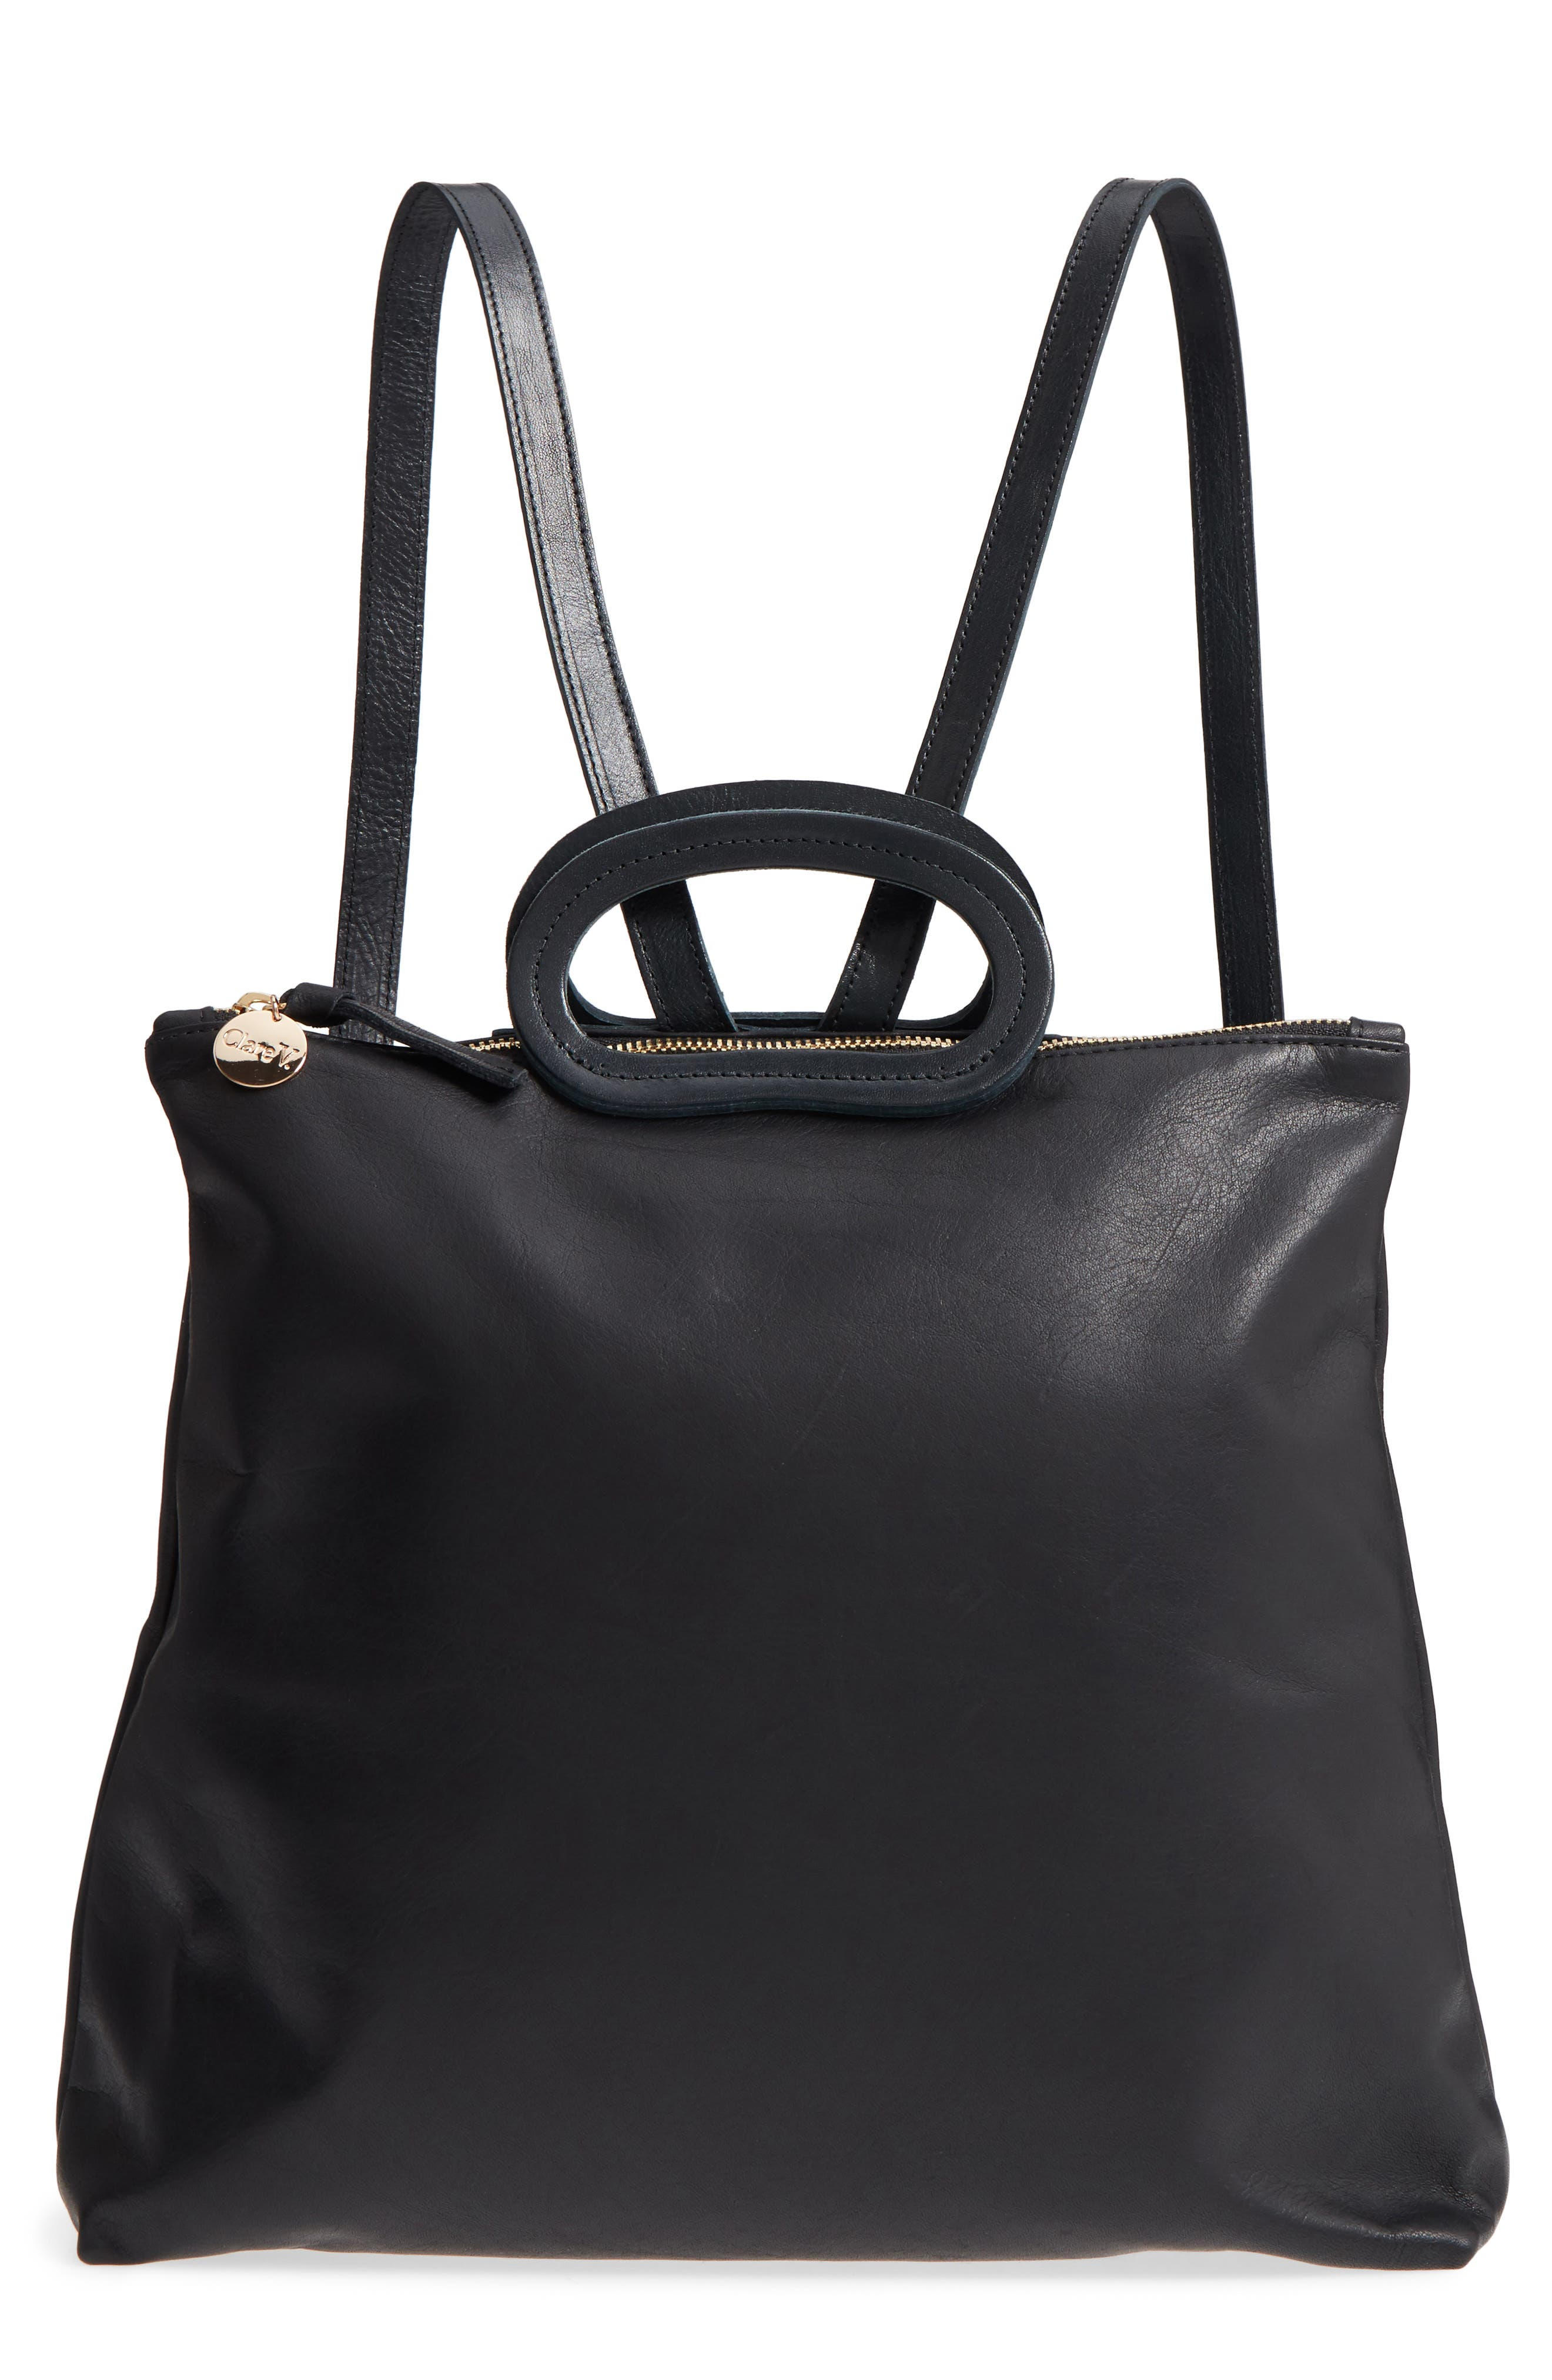 Marcelle Lambskin Leather Backpack,                         Main,                         color, Black